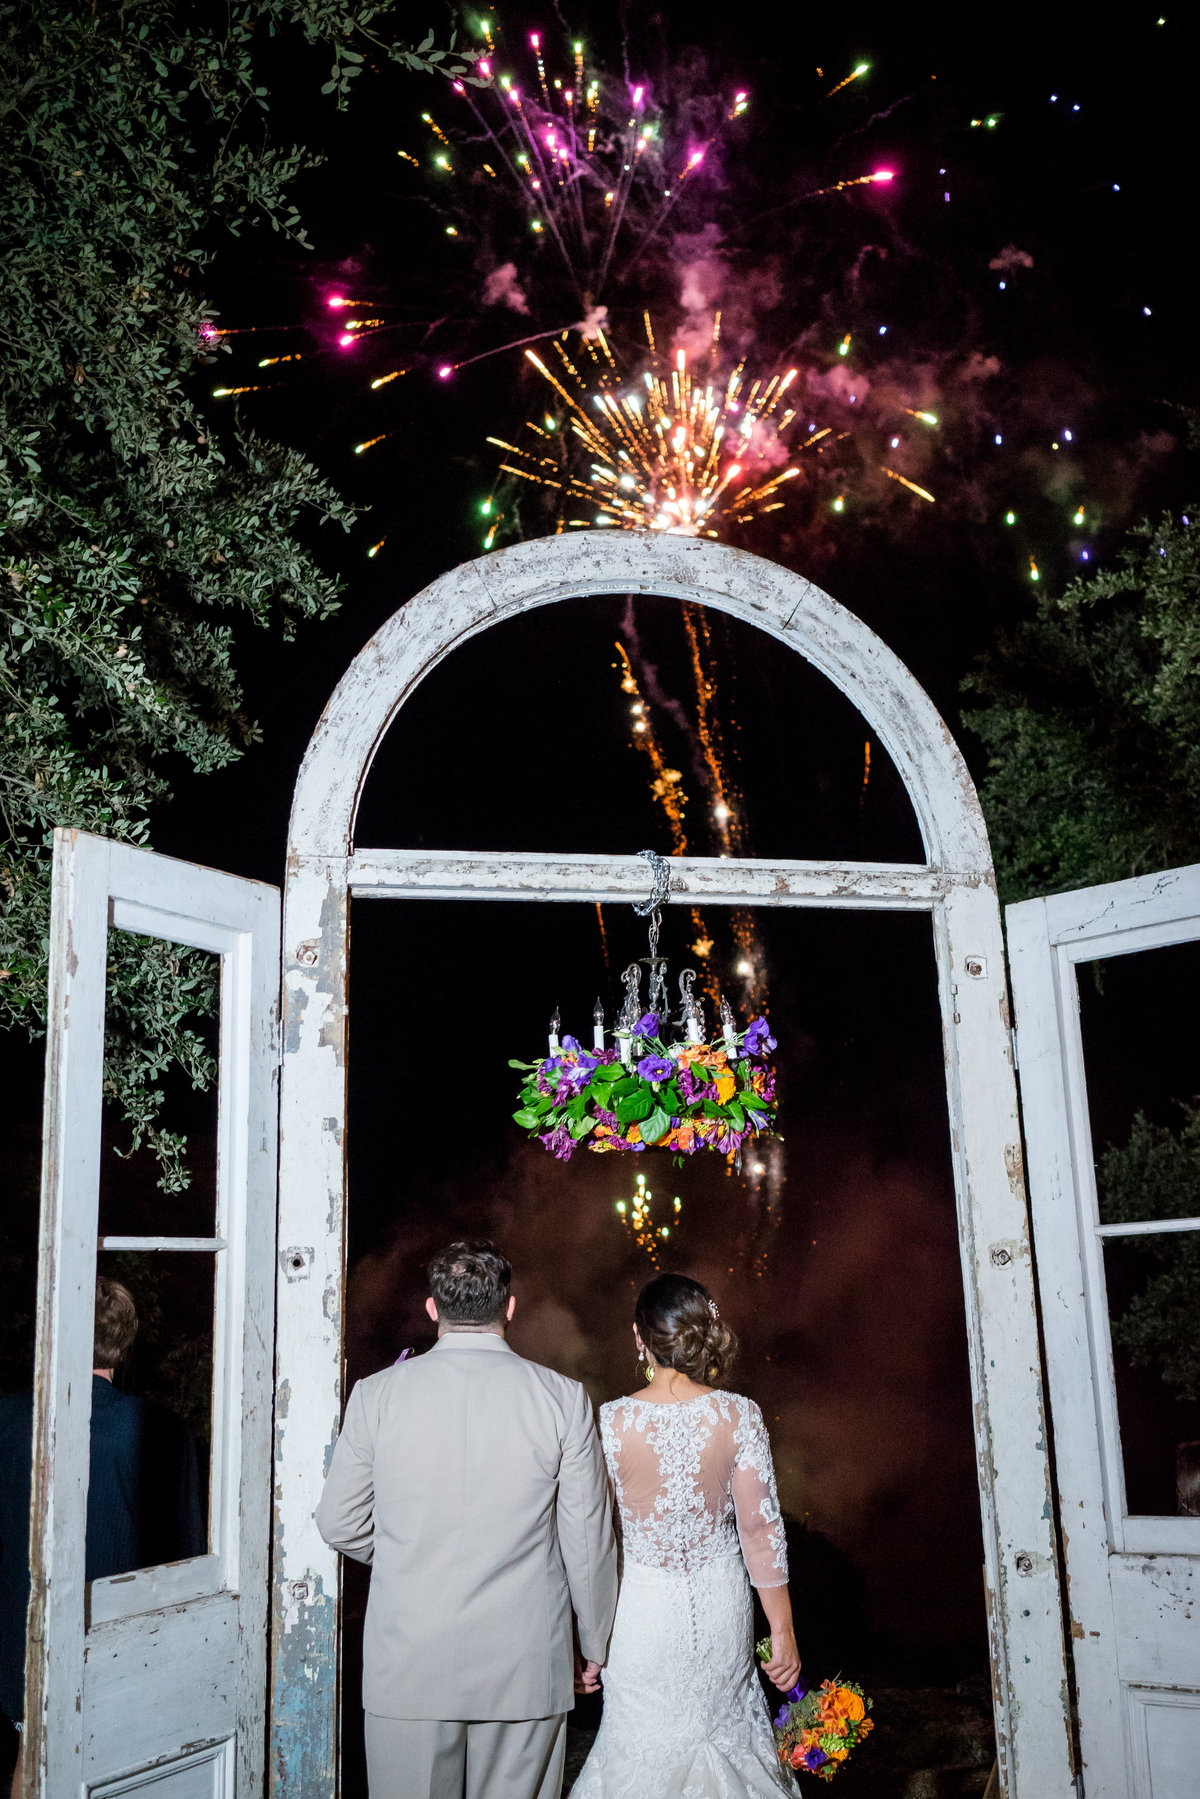 Bride and groom watch fireworks from outdoor altar wedding ceremony site for grand exit at Marquardt Ranch venue hill country